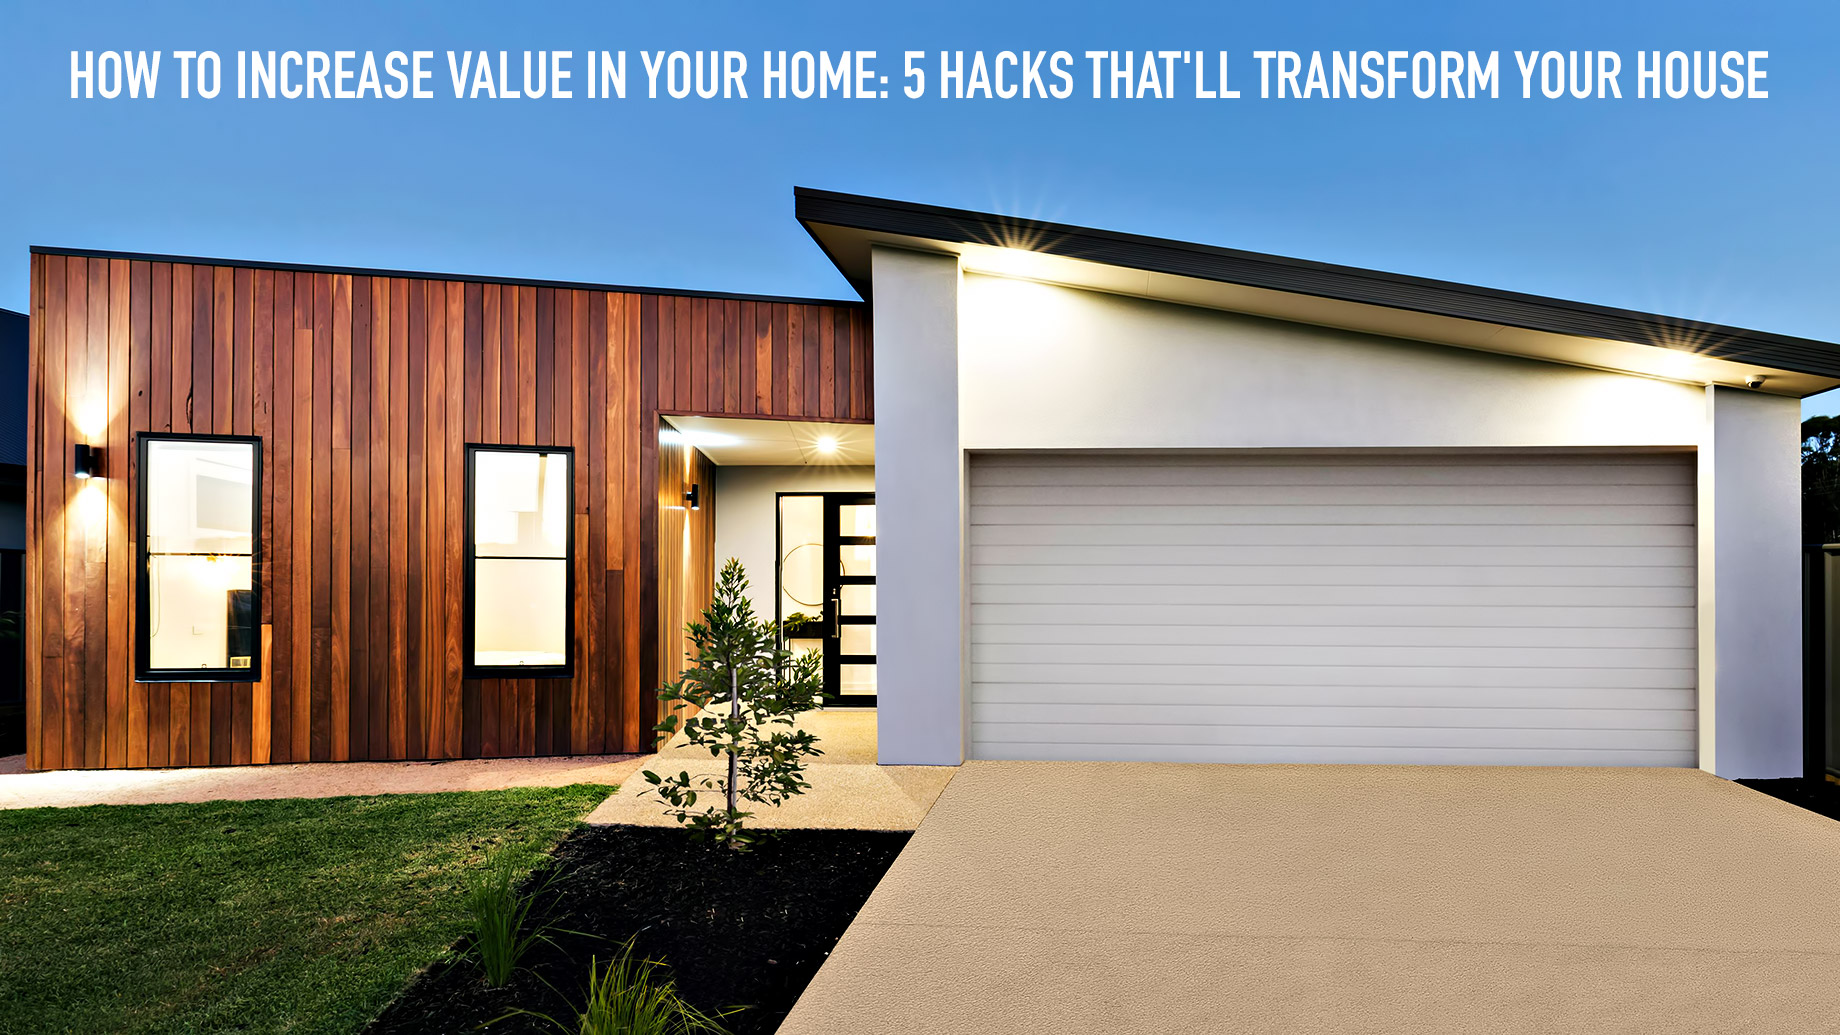 How to Increase Value in Your Home - 5 Hacks That'll Transform Your House